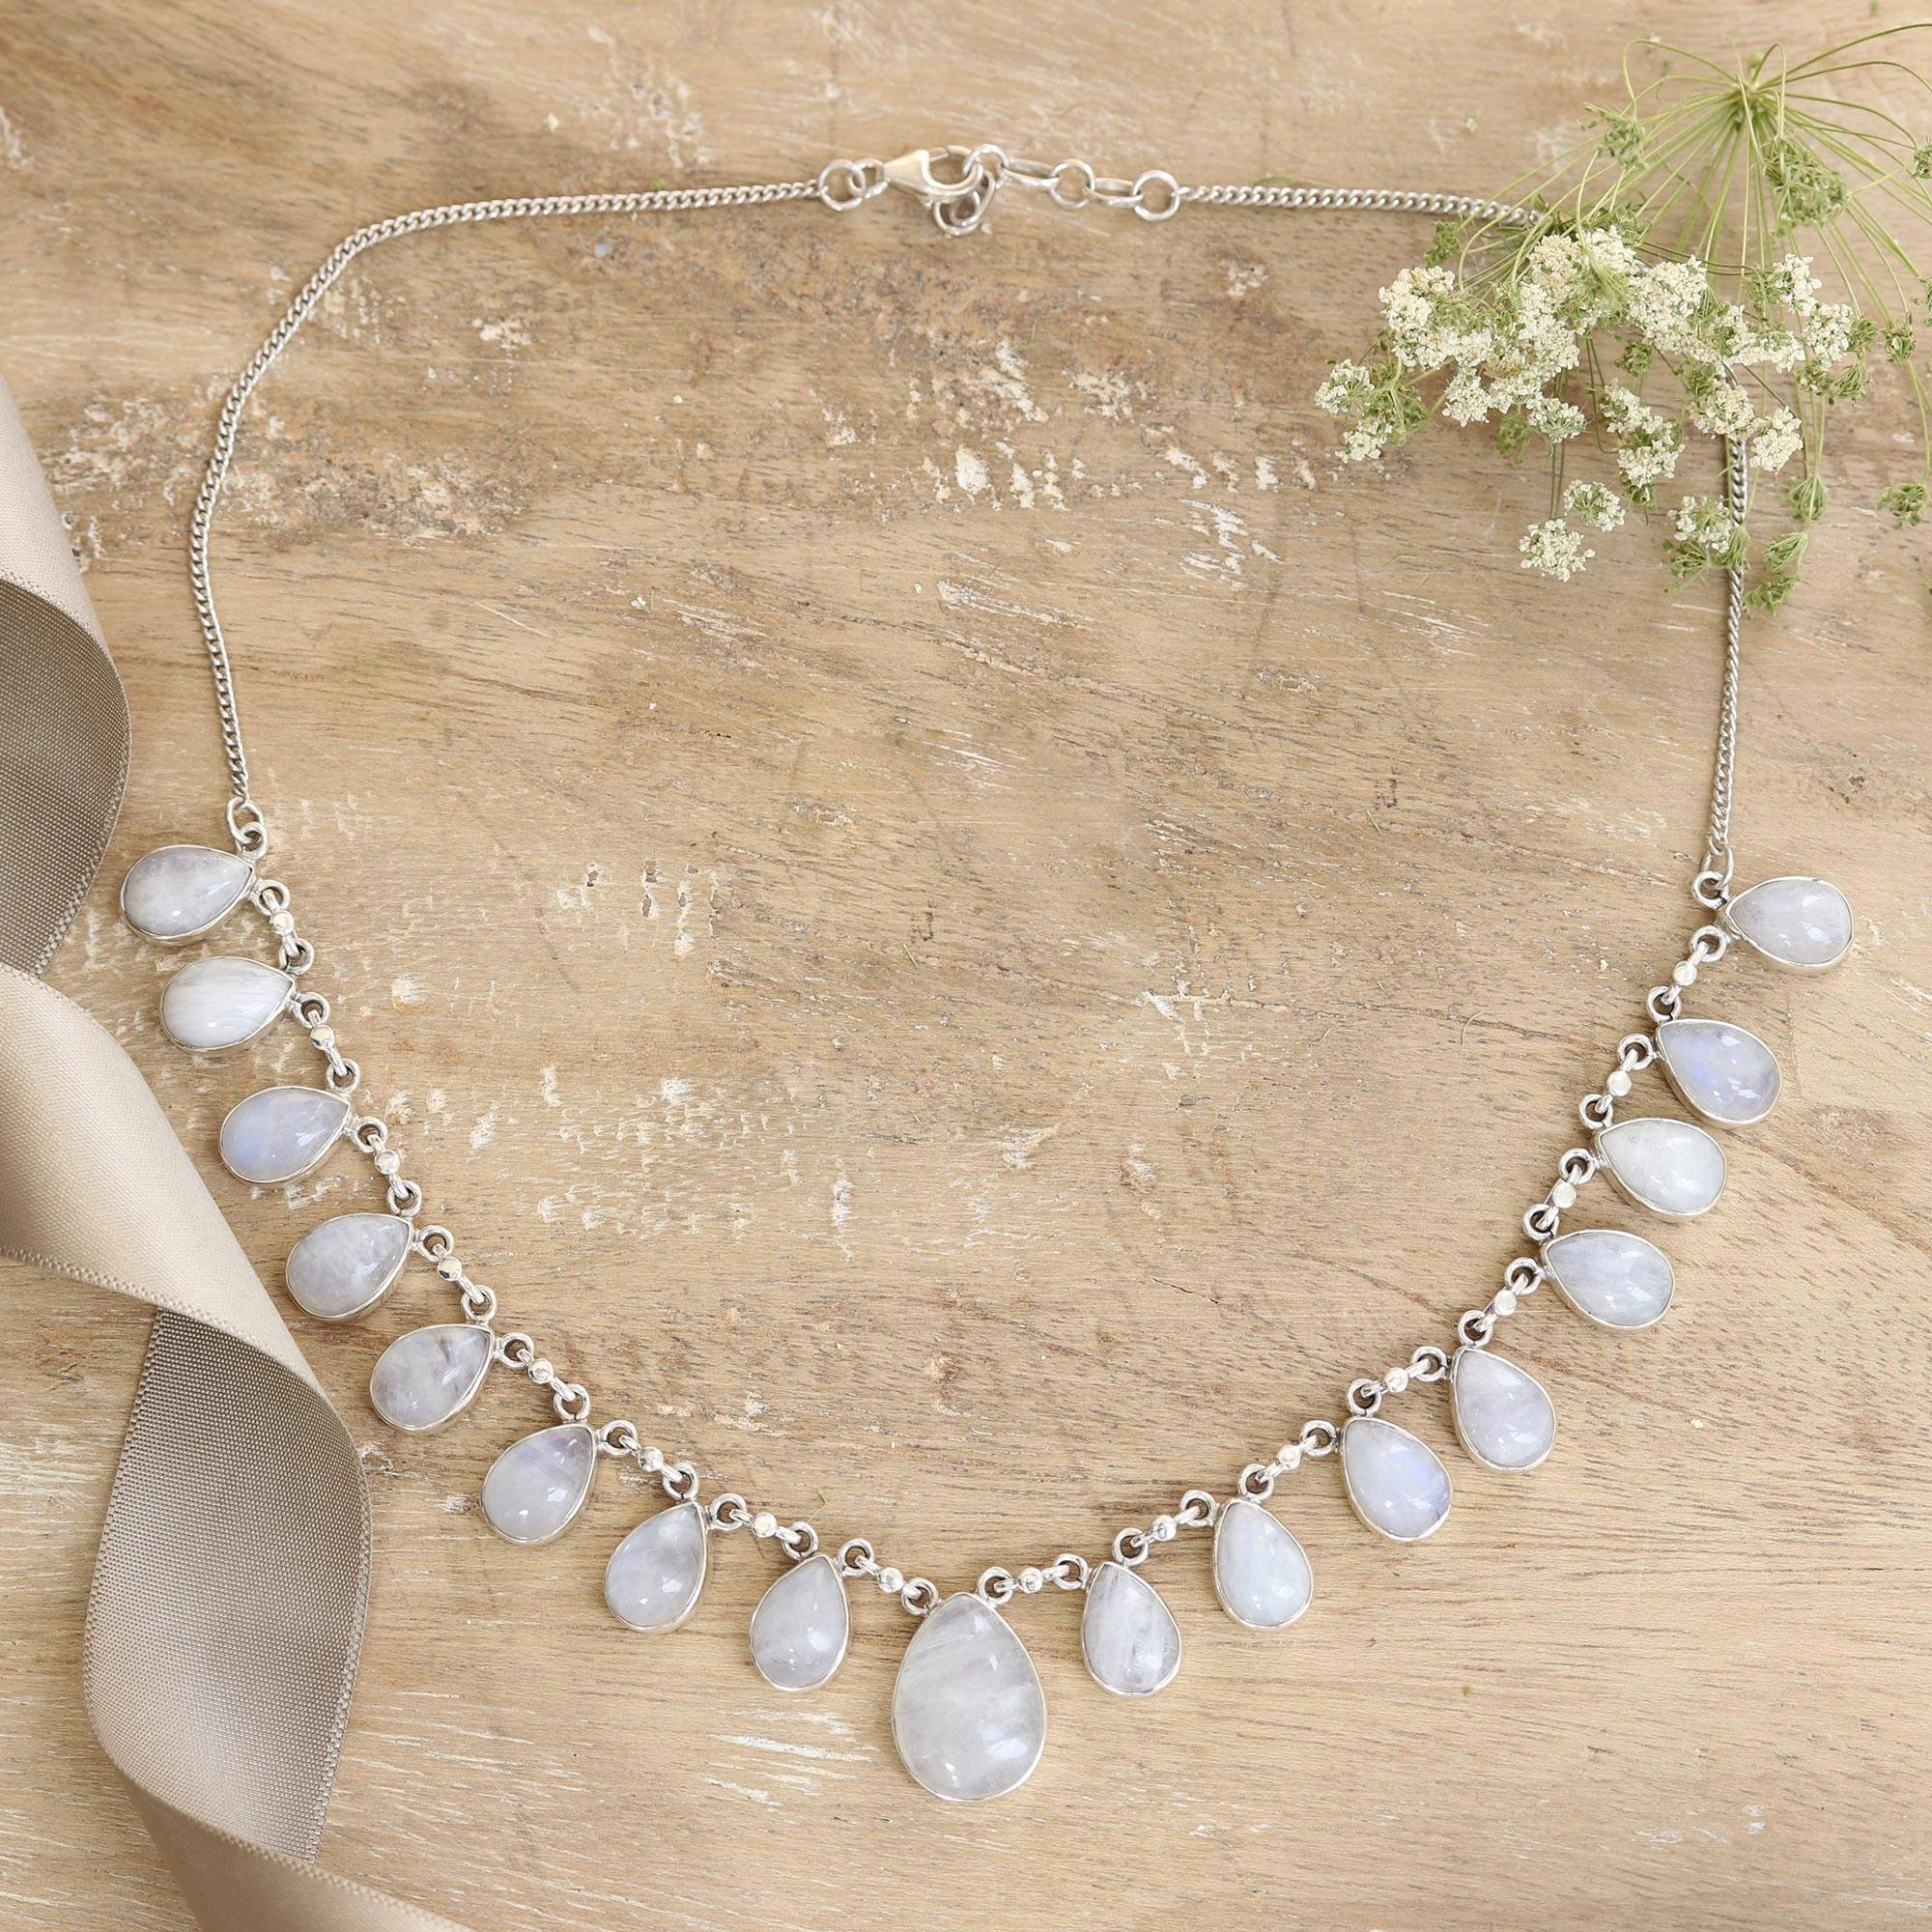 product jewelry from fine female white for and style trendy pearl com gifts necklace dhgate elegant choker nice